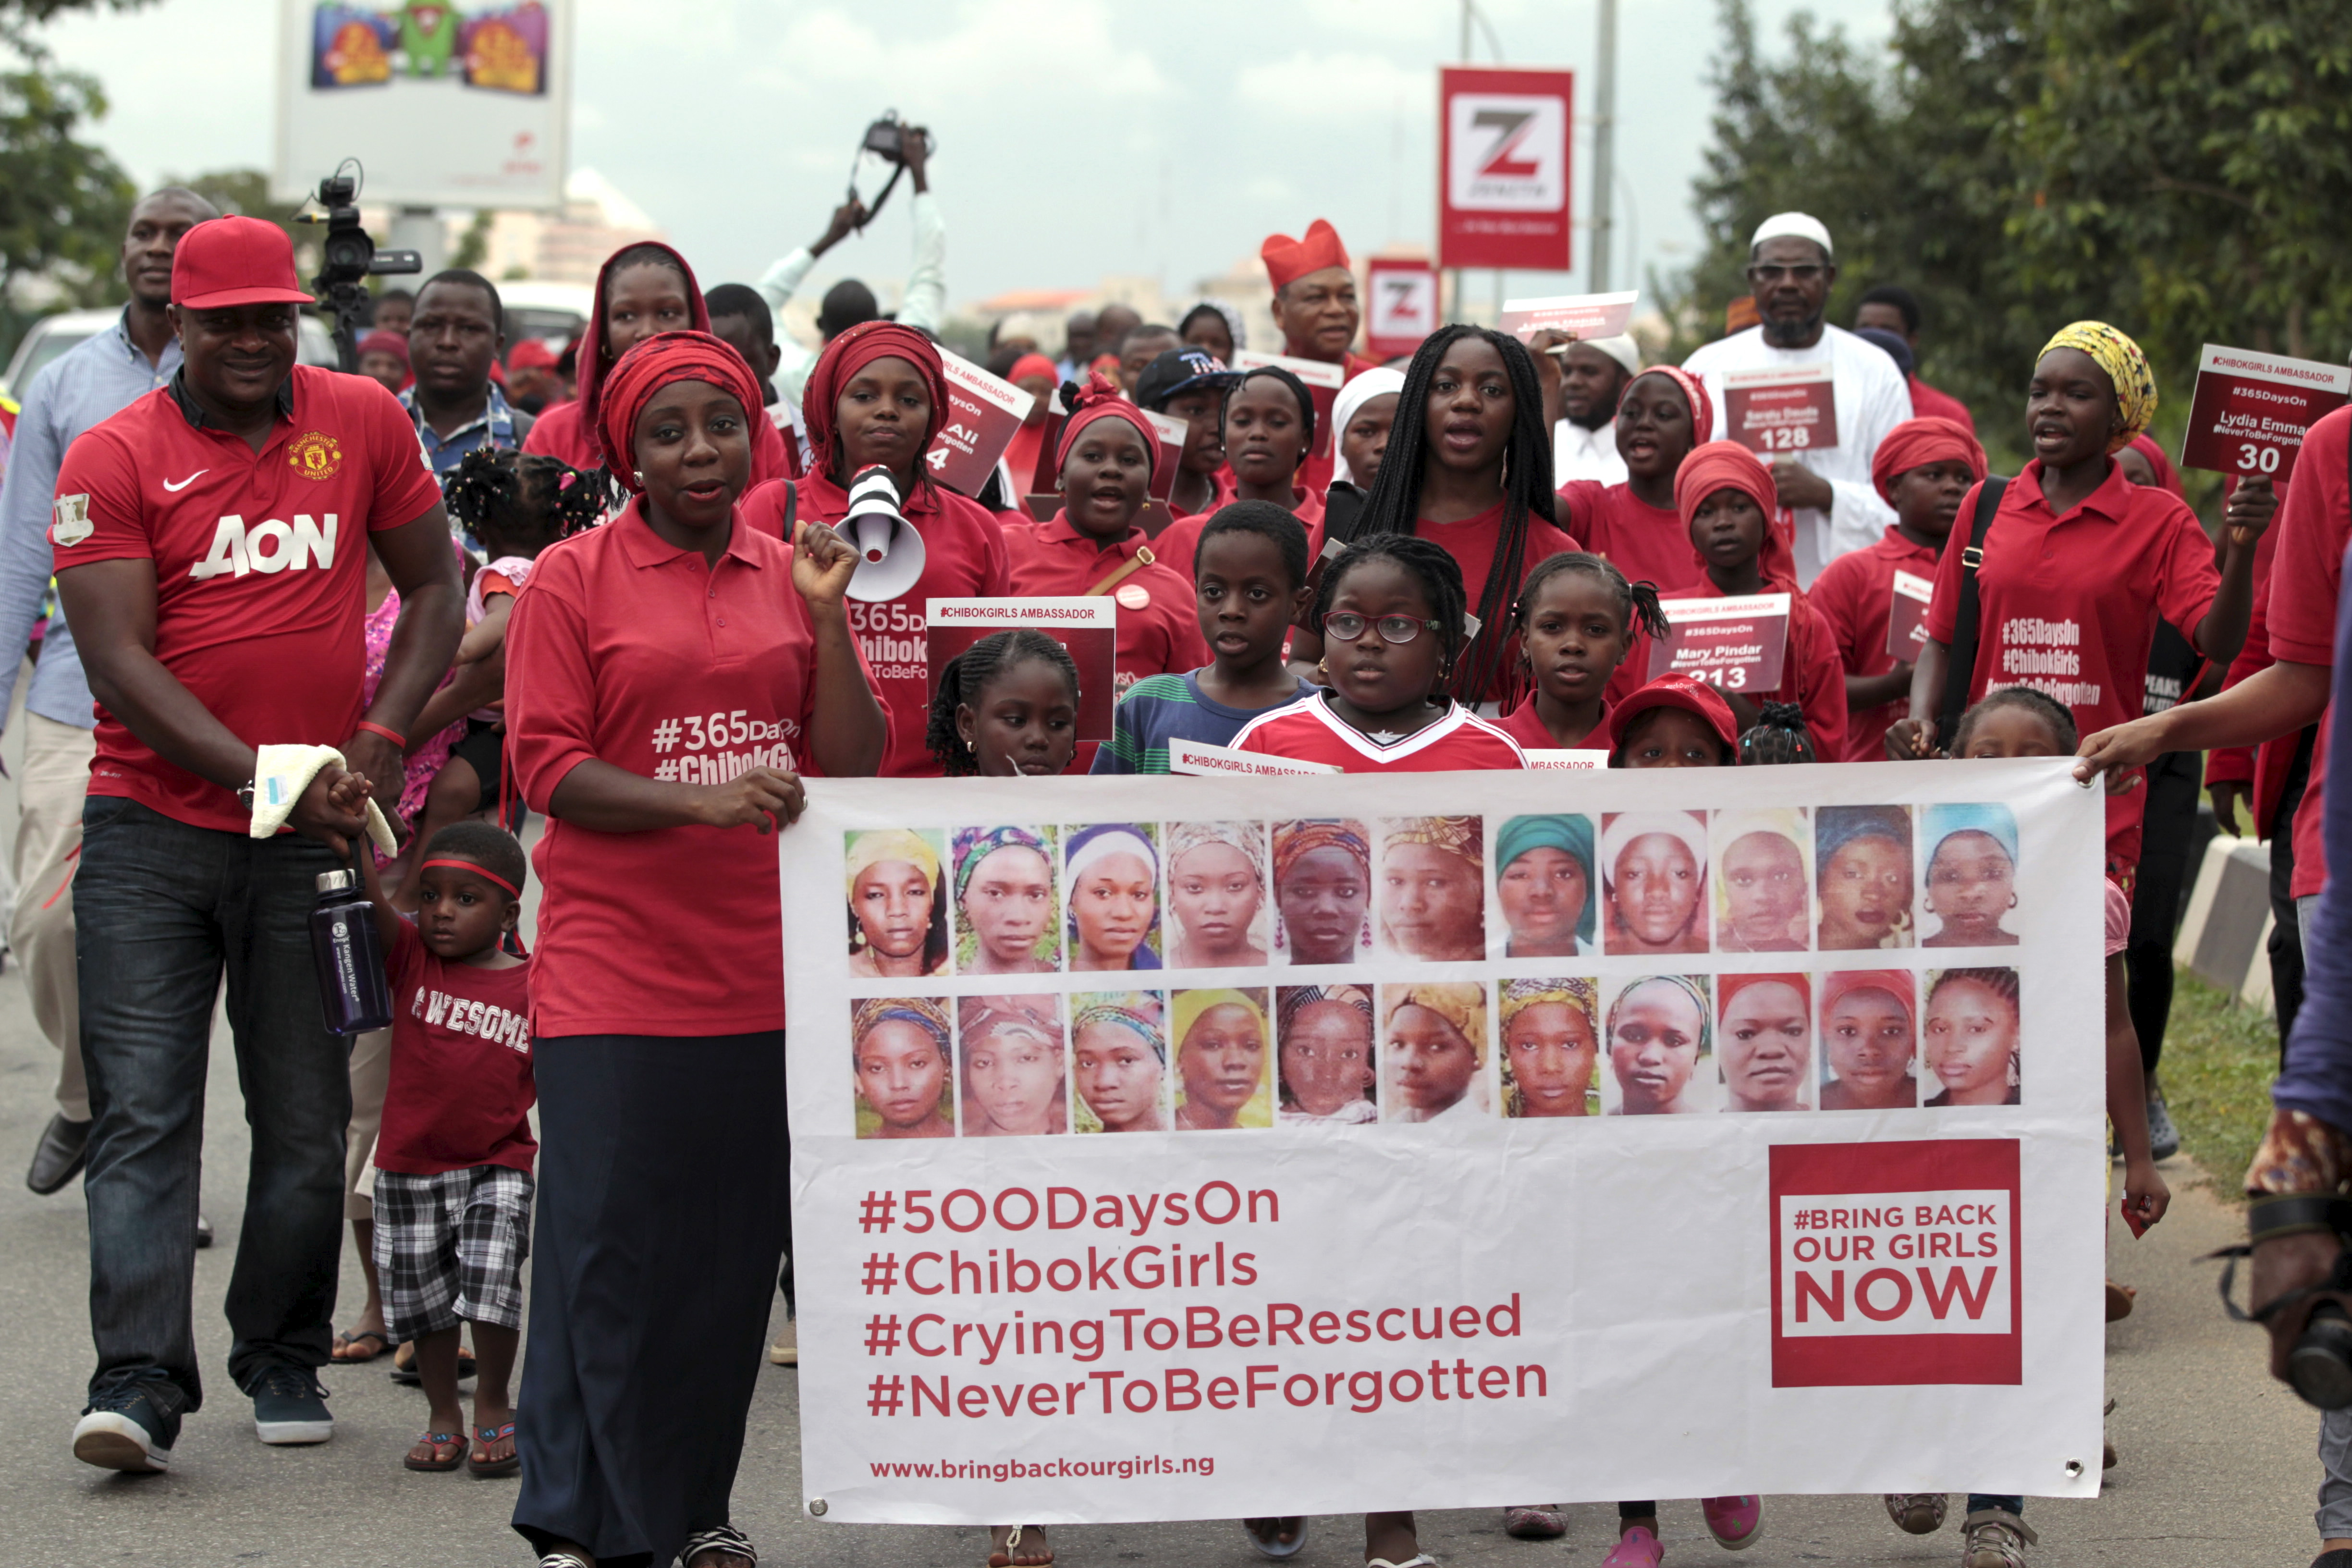 Protesters hold a sign calling for the return of the kidnapped Chibok Girls